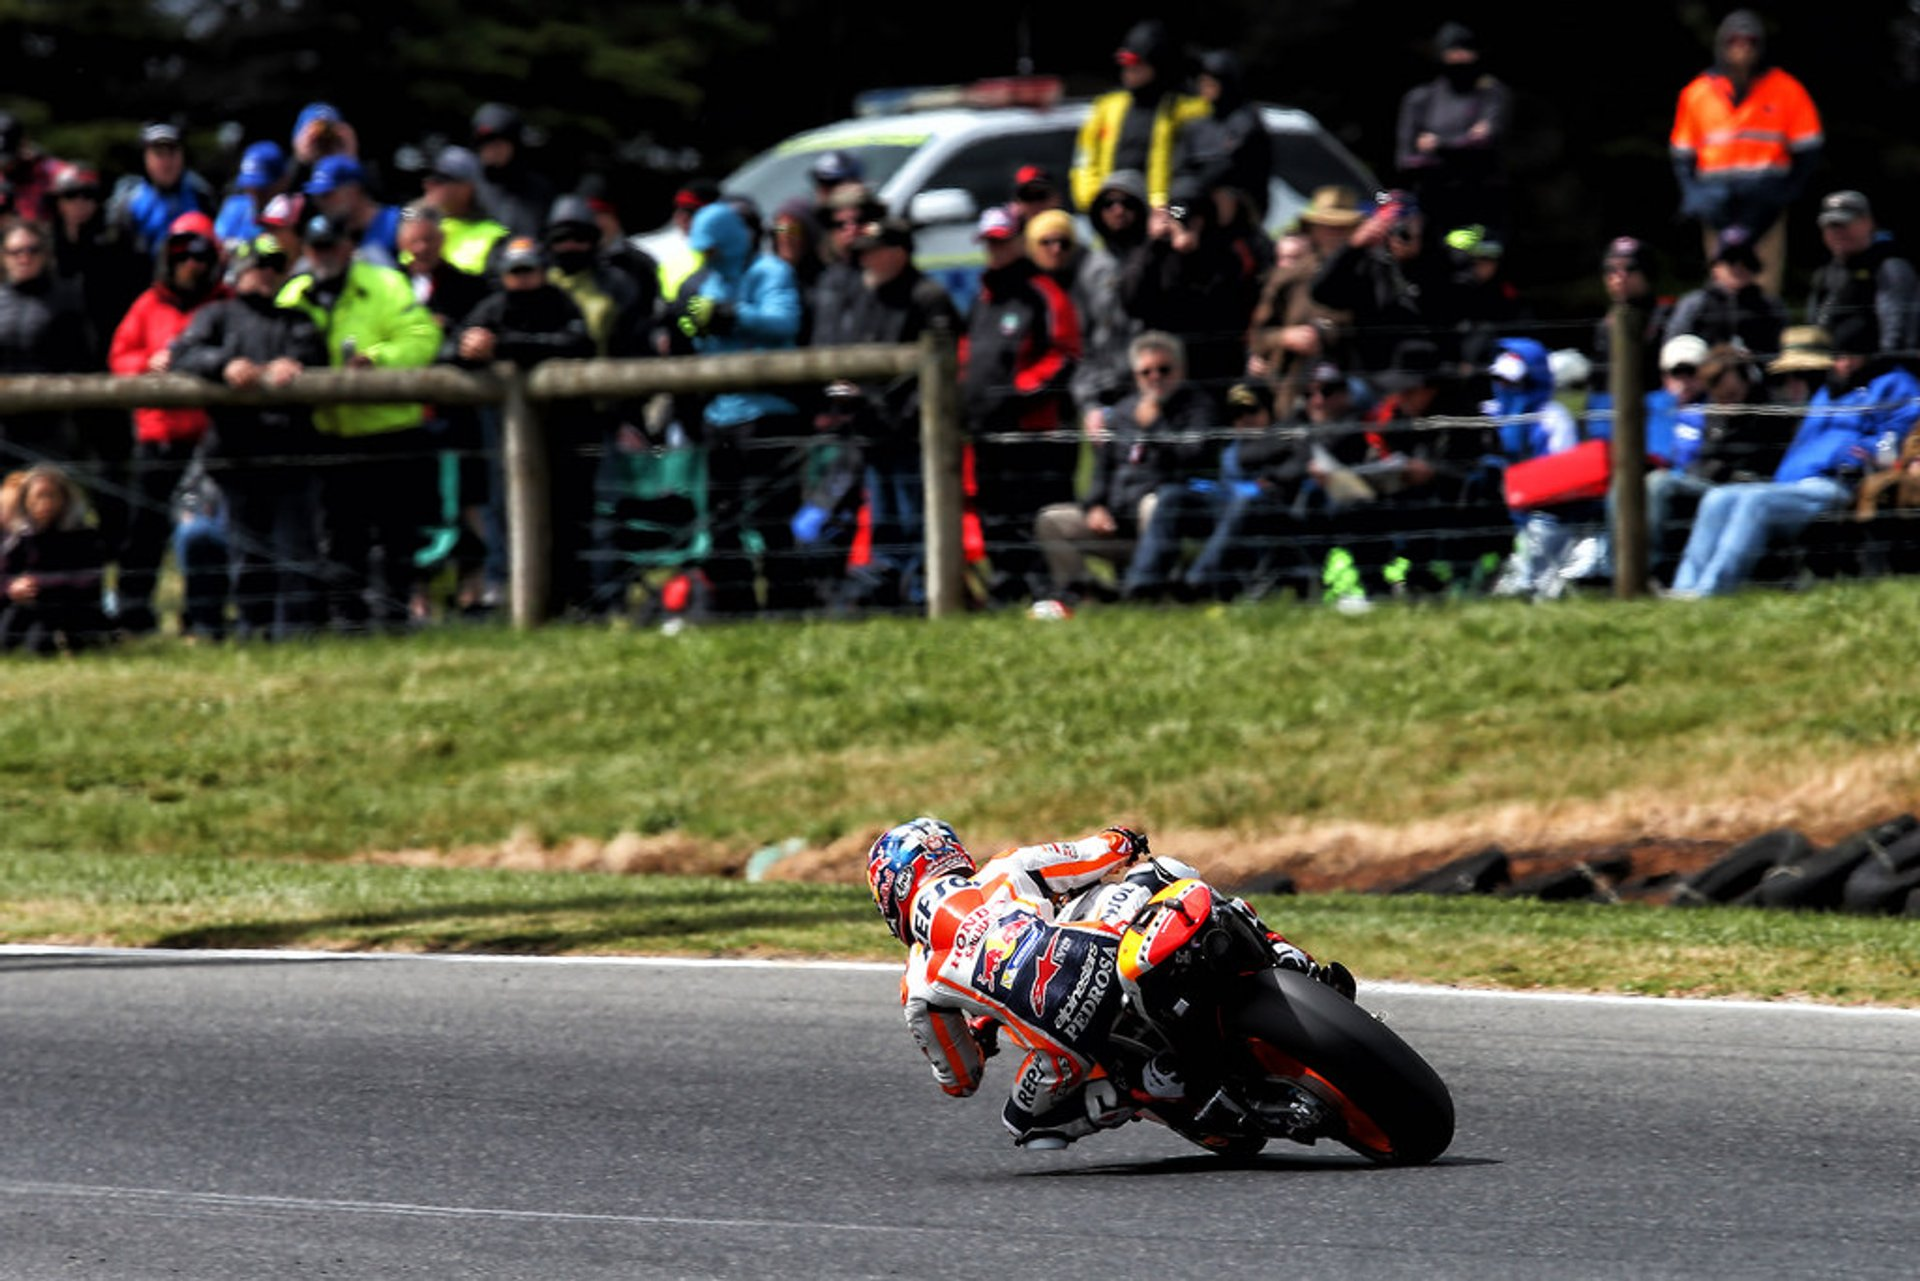 Australian Motorcycle Grand Prix in Victoria - Best Season 2019